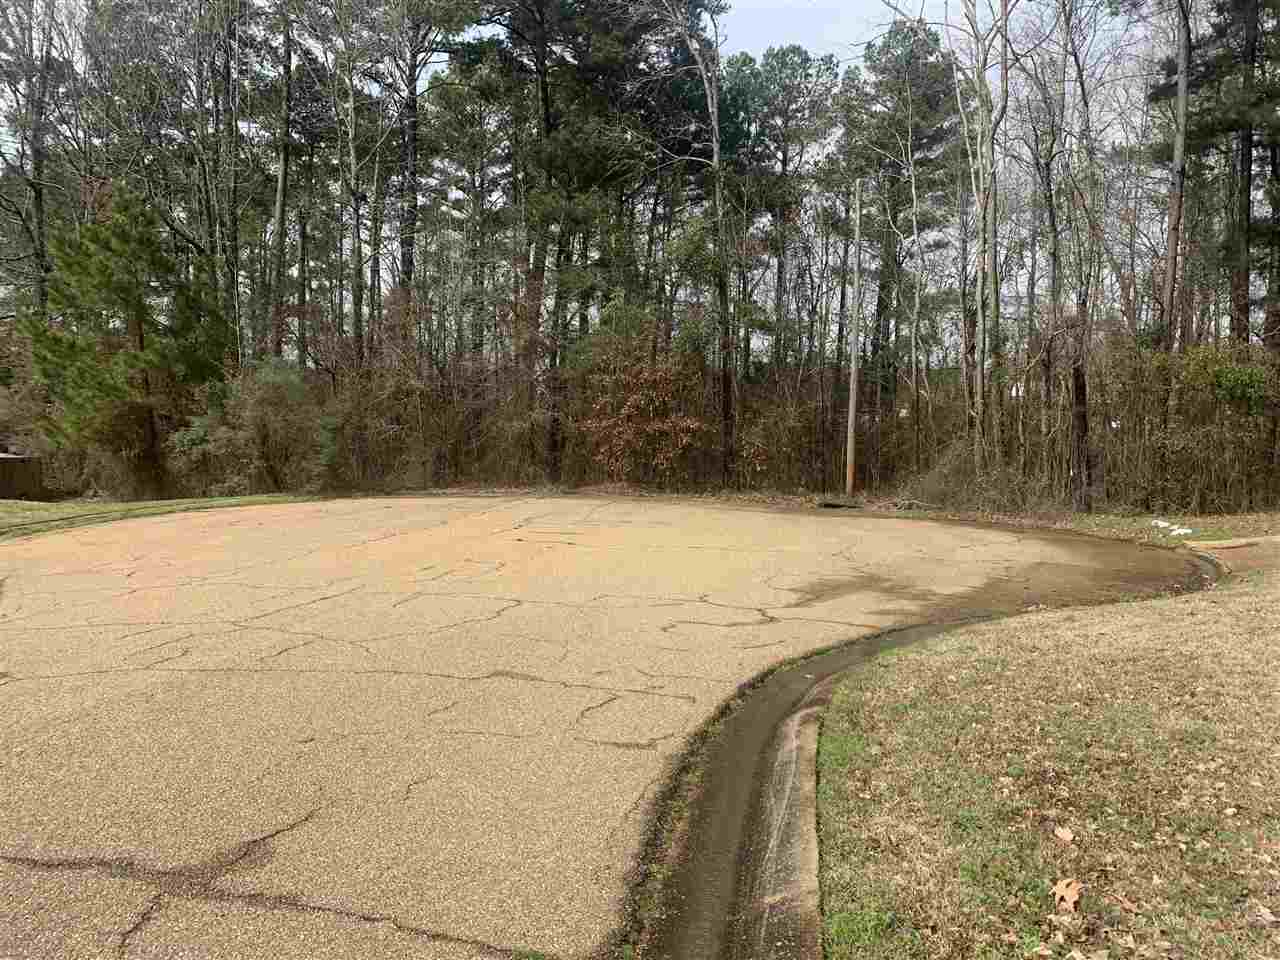 This Grand PRIME LOCATION Awaits YOU to Build a future DREAM HOME.  Very Attractive Wooded Lot # 223 is nestled in a Highly Sought After LOCATION in Brandon MS, Rankin County (Some baby Magnolia Trees will welcome you). The Lot offers a Wealth of Amenities: Quiet Cul-De-Sac in a Newer part of Mill Creek 4 subdivision, Preferable School Choices, Variety of Shopping Center & Restaurants, Convenient Commute Routes, Close to Reservoir for Water activities, and Optional Club membership with Pool & Tennis courts available. The Lot # 222 is also Available for you so Call your Realtor NOW to view this beauty TODAY (SOIL TEST is done by Seller).